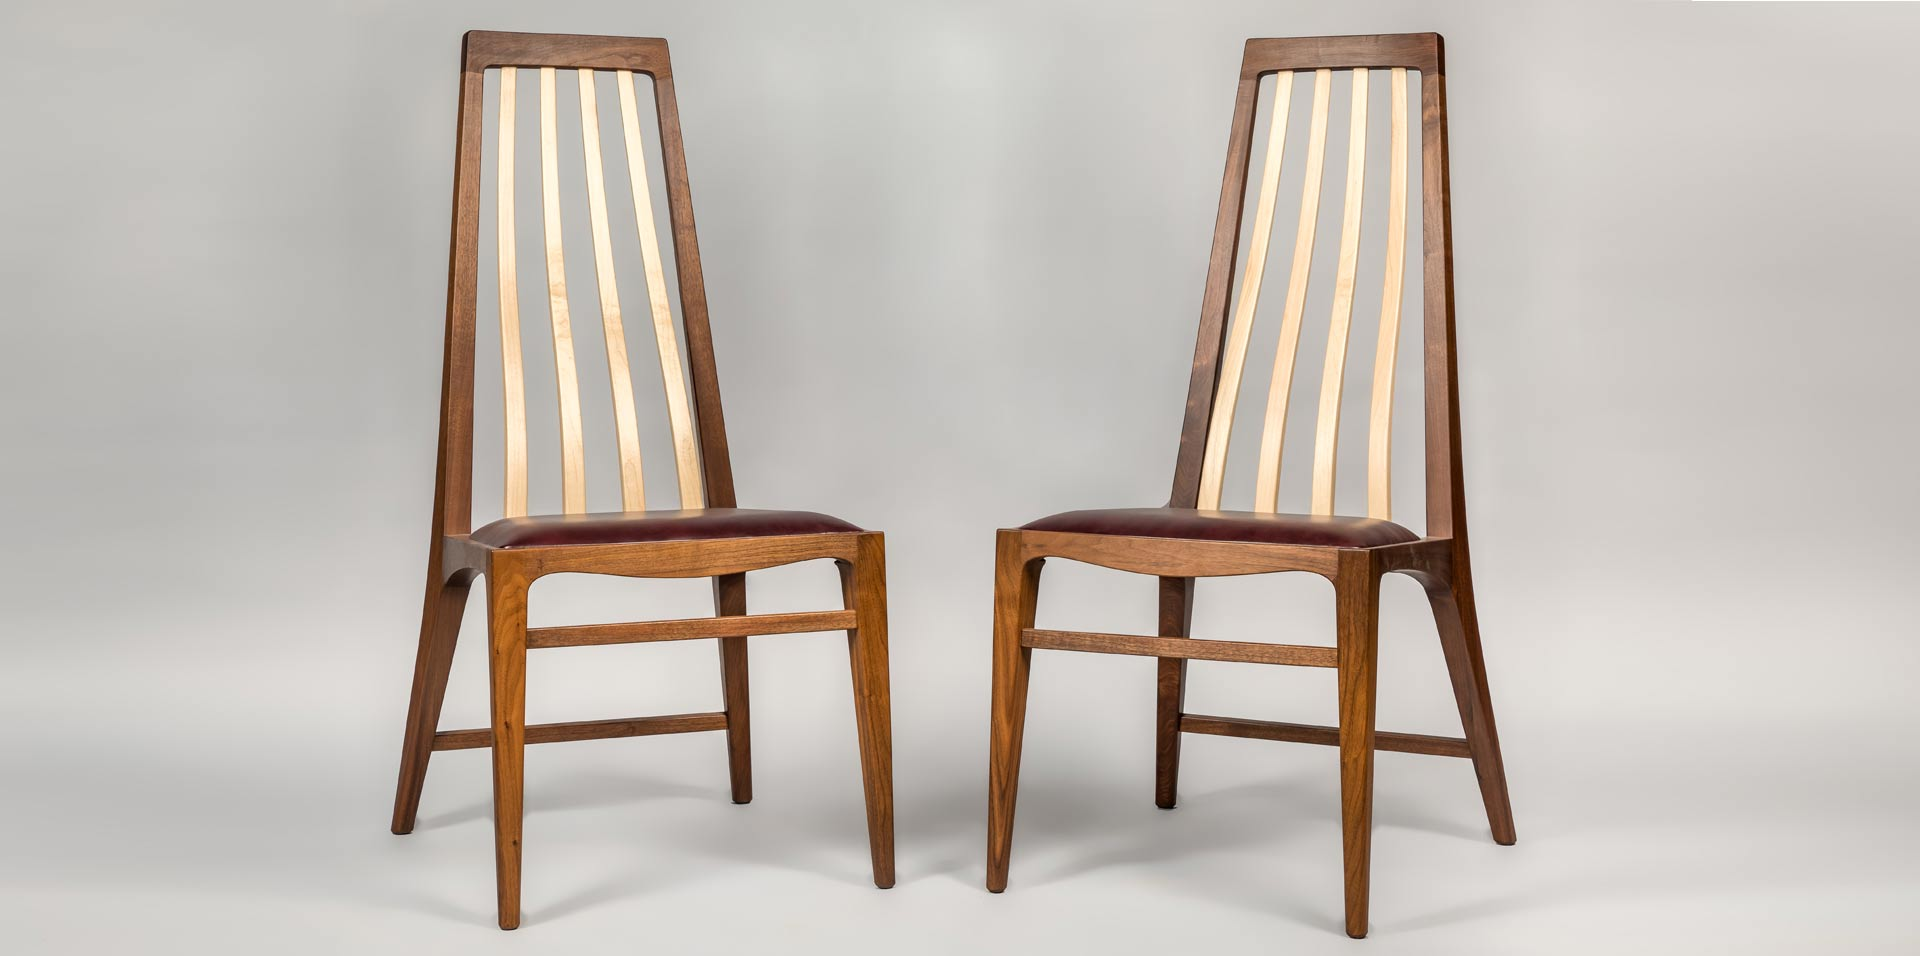 Grassroots Chairs - Walnut - Doug King Design